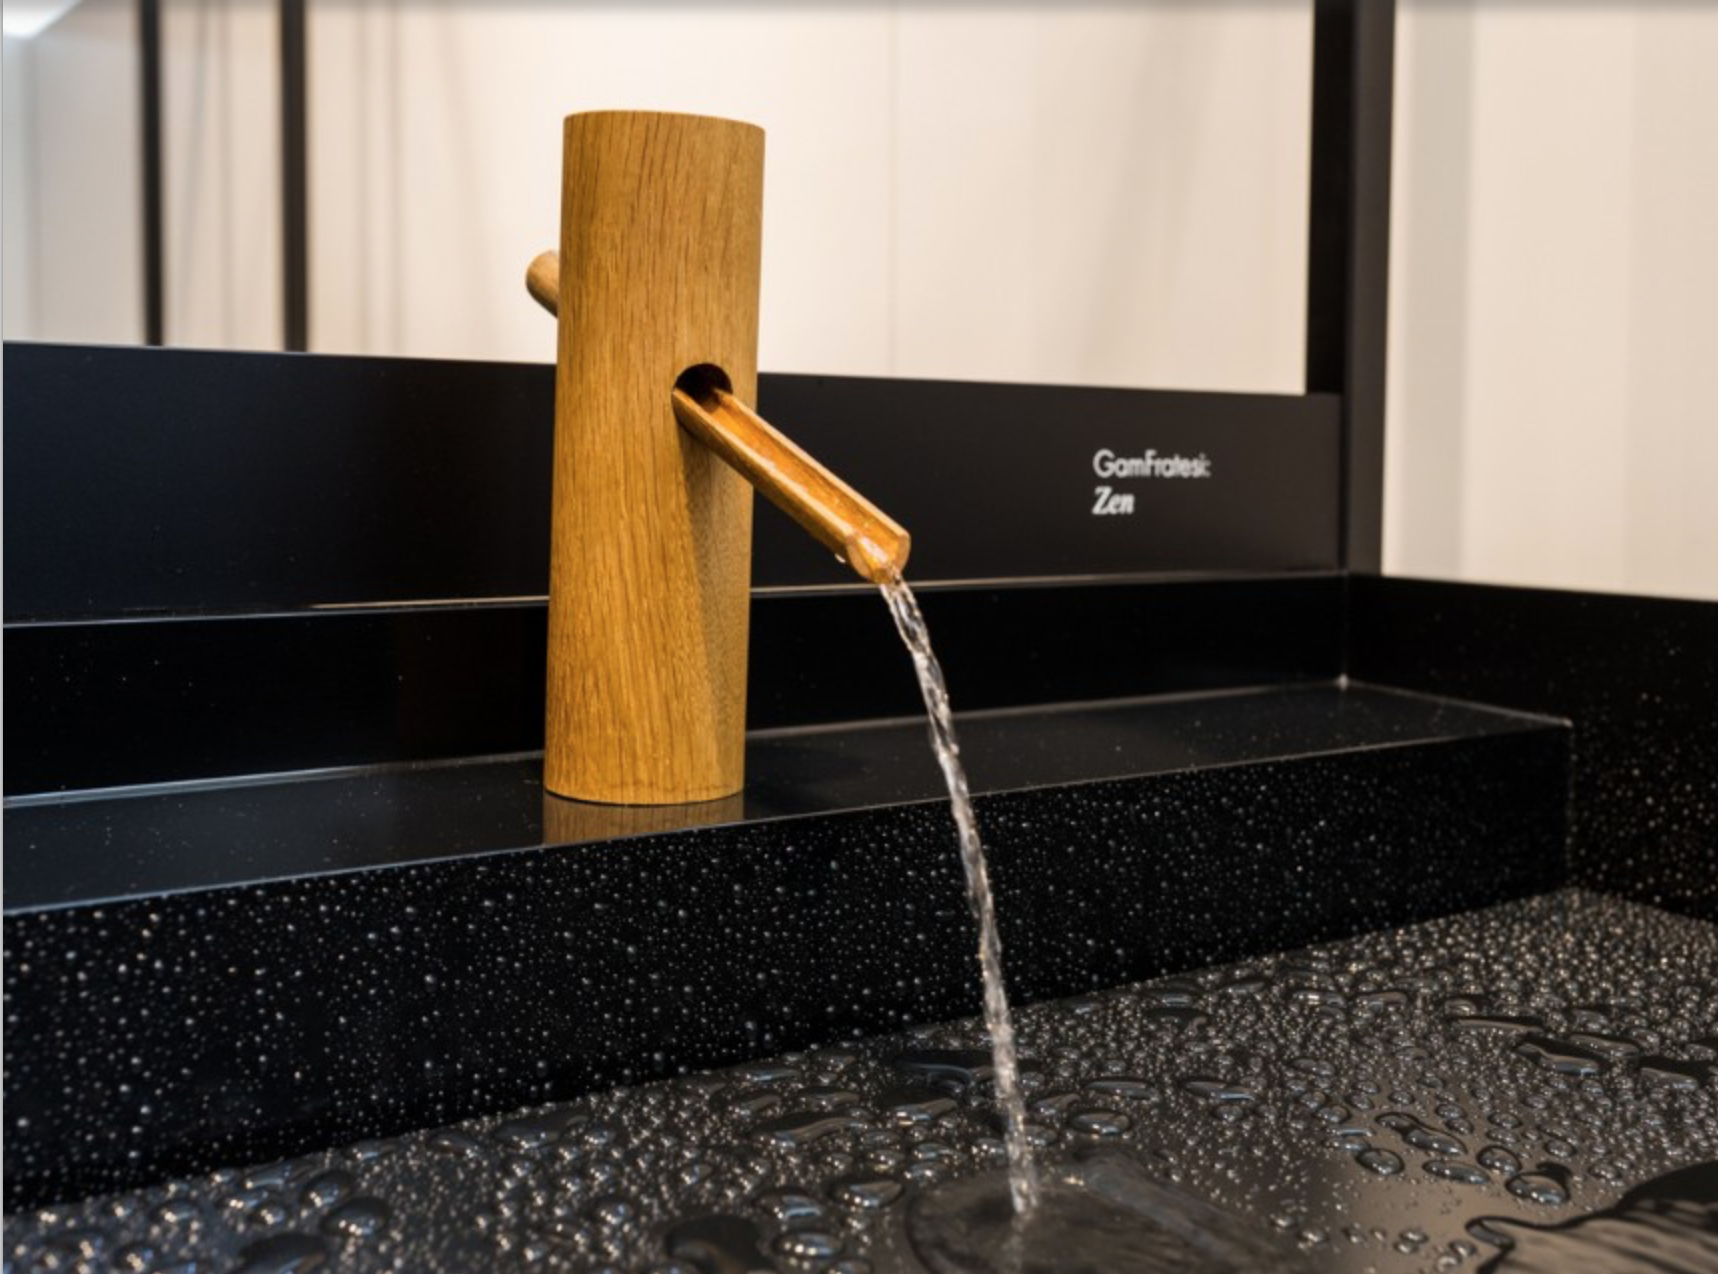 Clean lines of a bamboo faucet